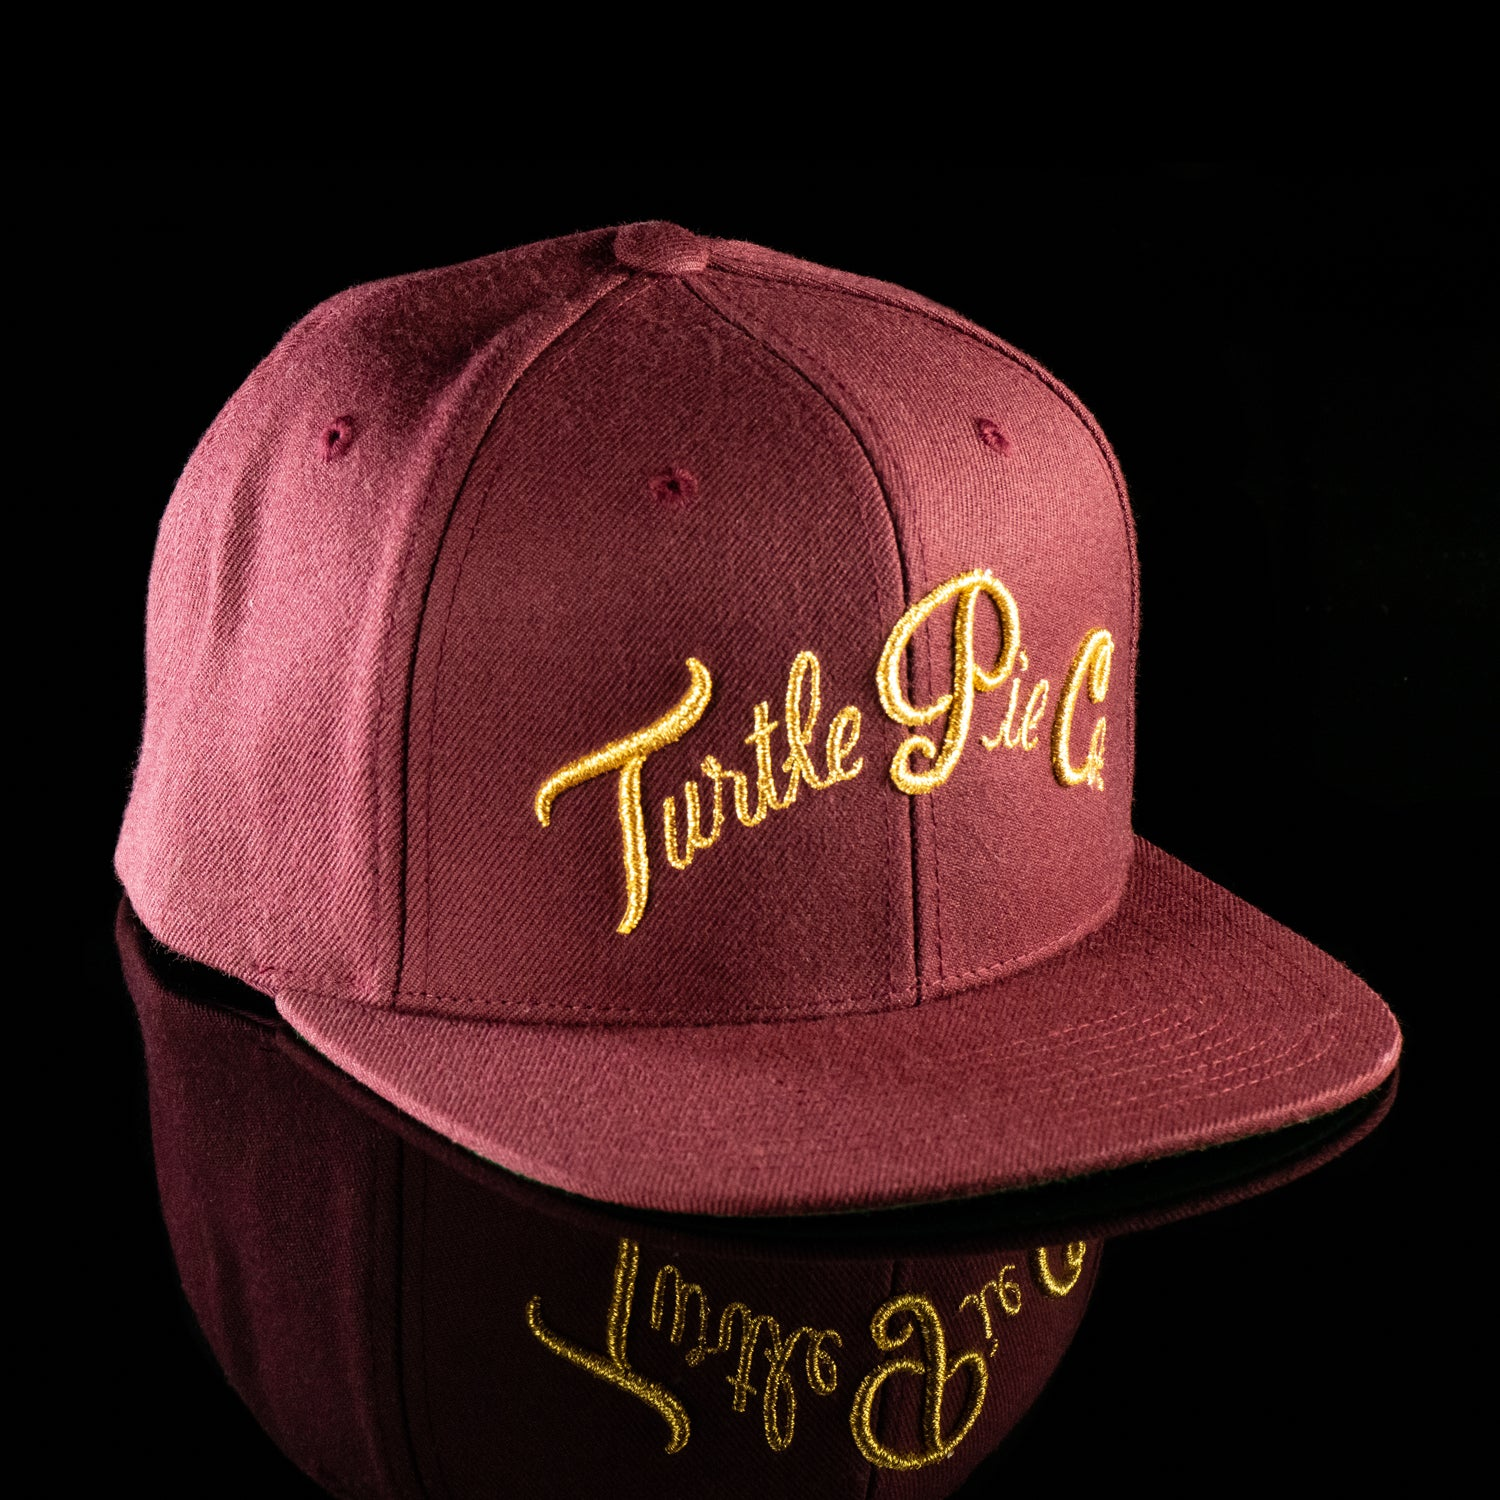 Turtle Pie Co Snapback Gold On Burgundy